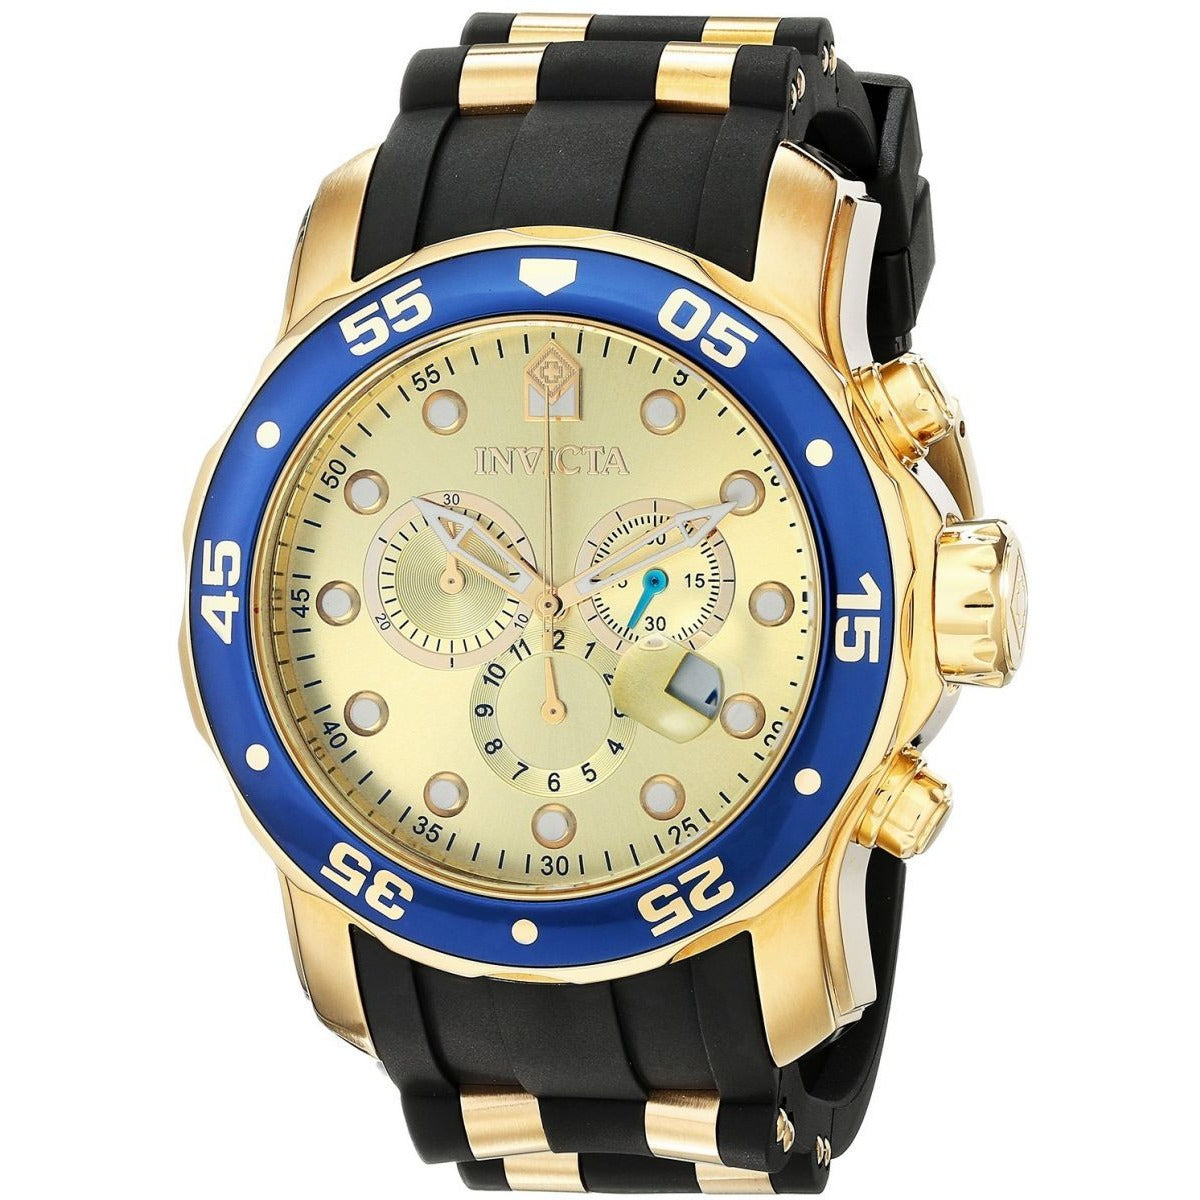 Invicta 17881 Pro Diver for Men Sports Polyurethane Band Watch